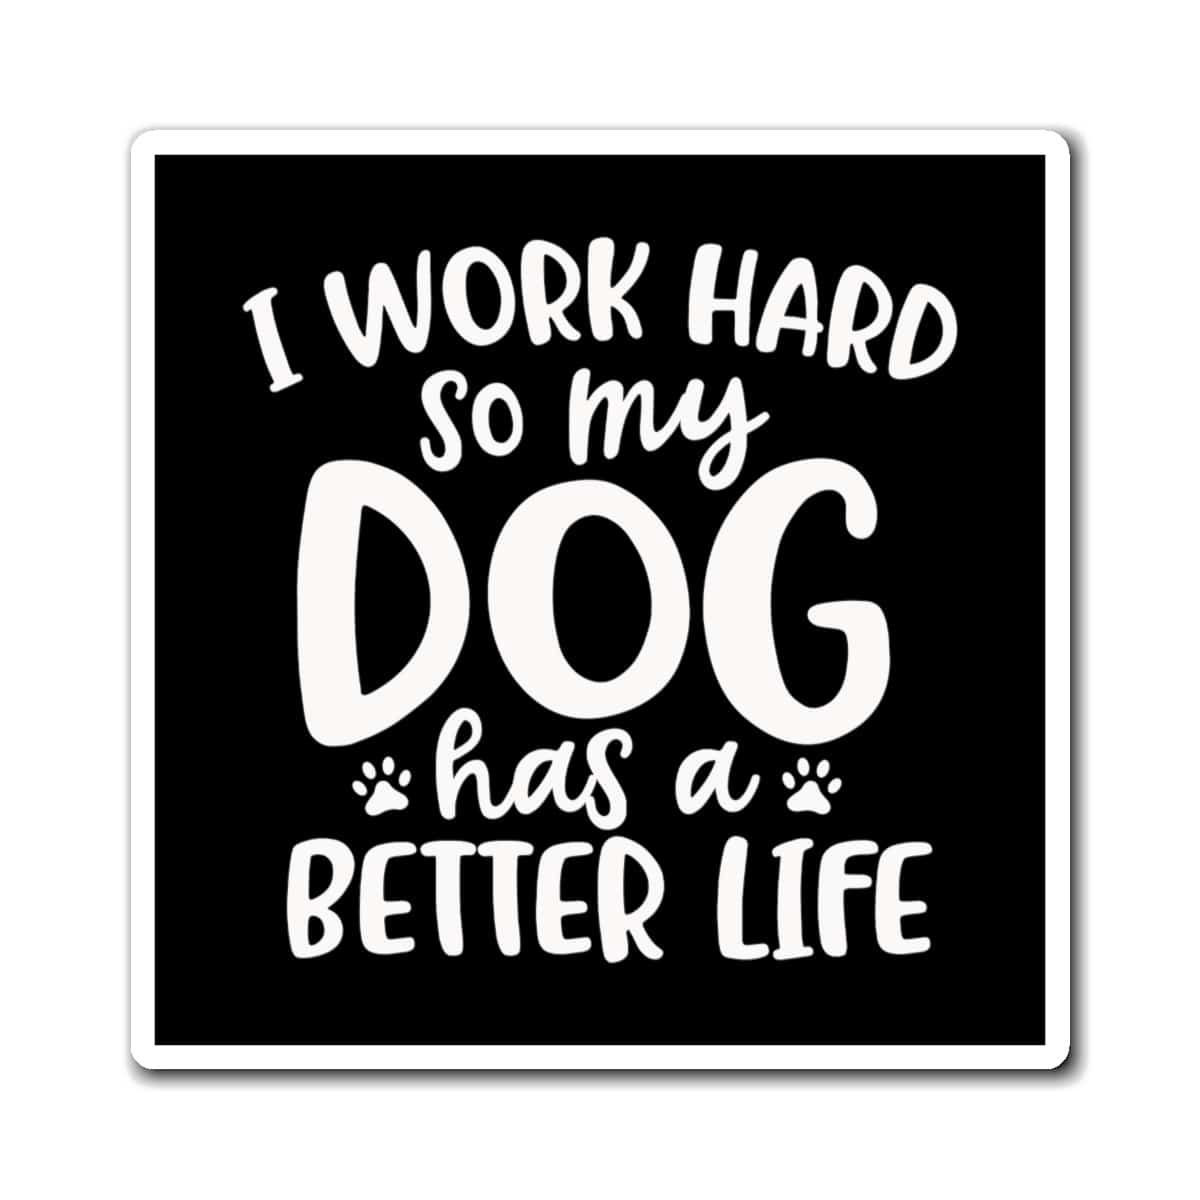 Funny Fridge Magnet For Dog Lovers & Pet Parents